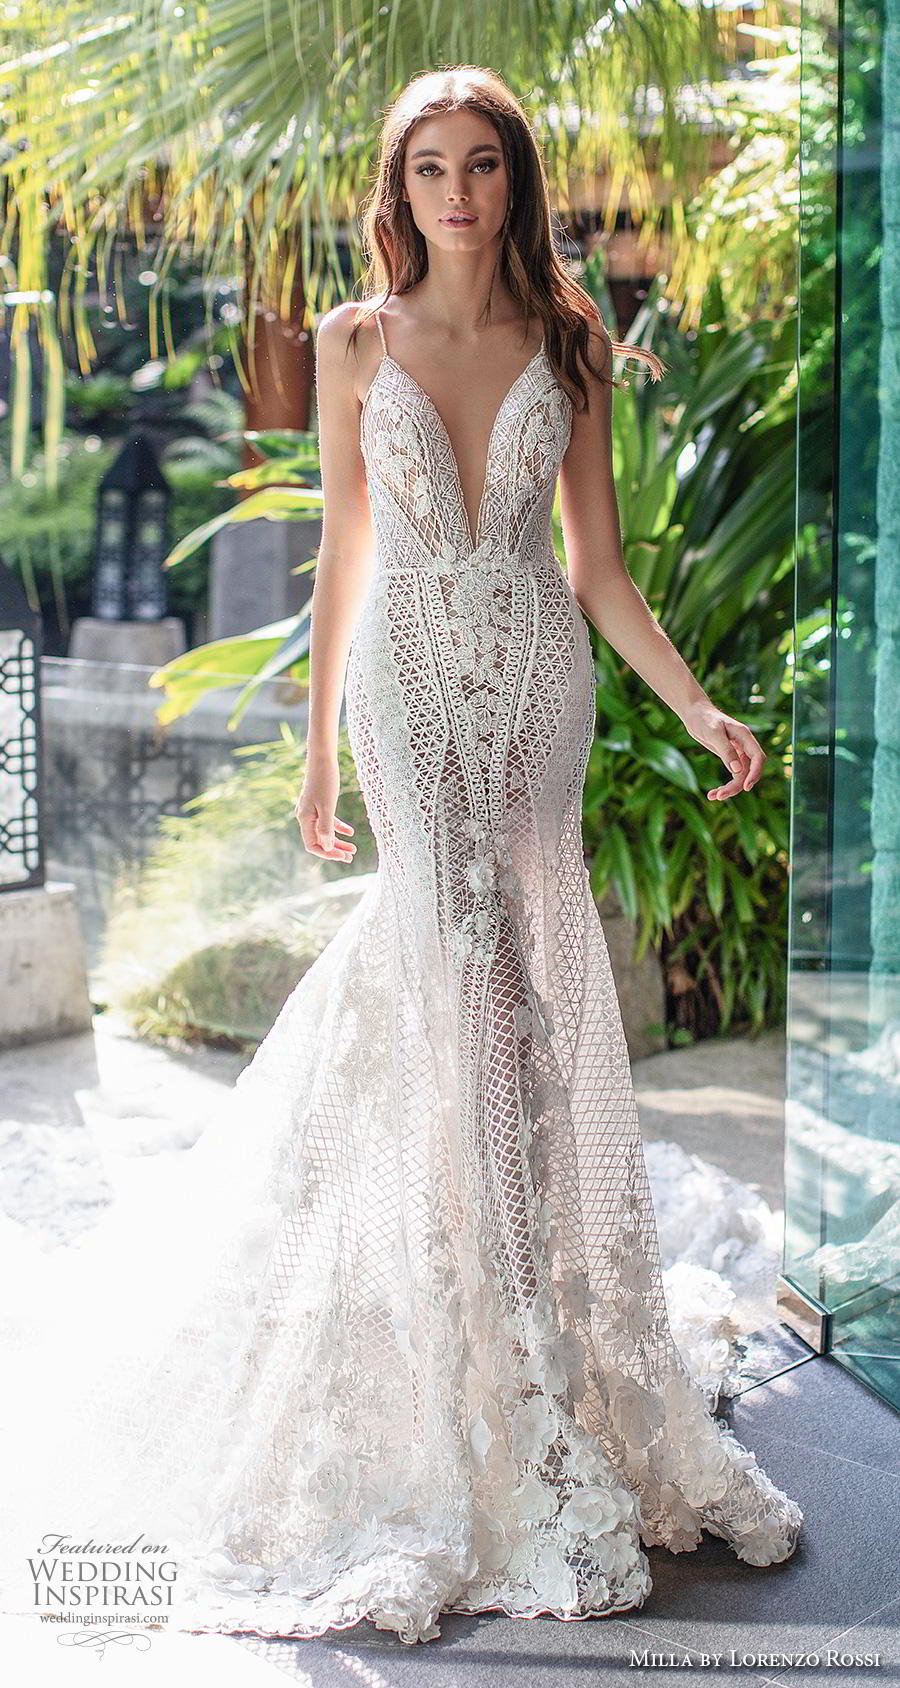 lorenzo rossi 2019 milla bridal sleeveless spaghetti strap deep plunging sweetheart neckline full embellishment sexy elegant fit and flare wedding dress low back royal train (5) mv